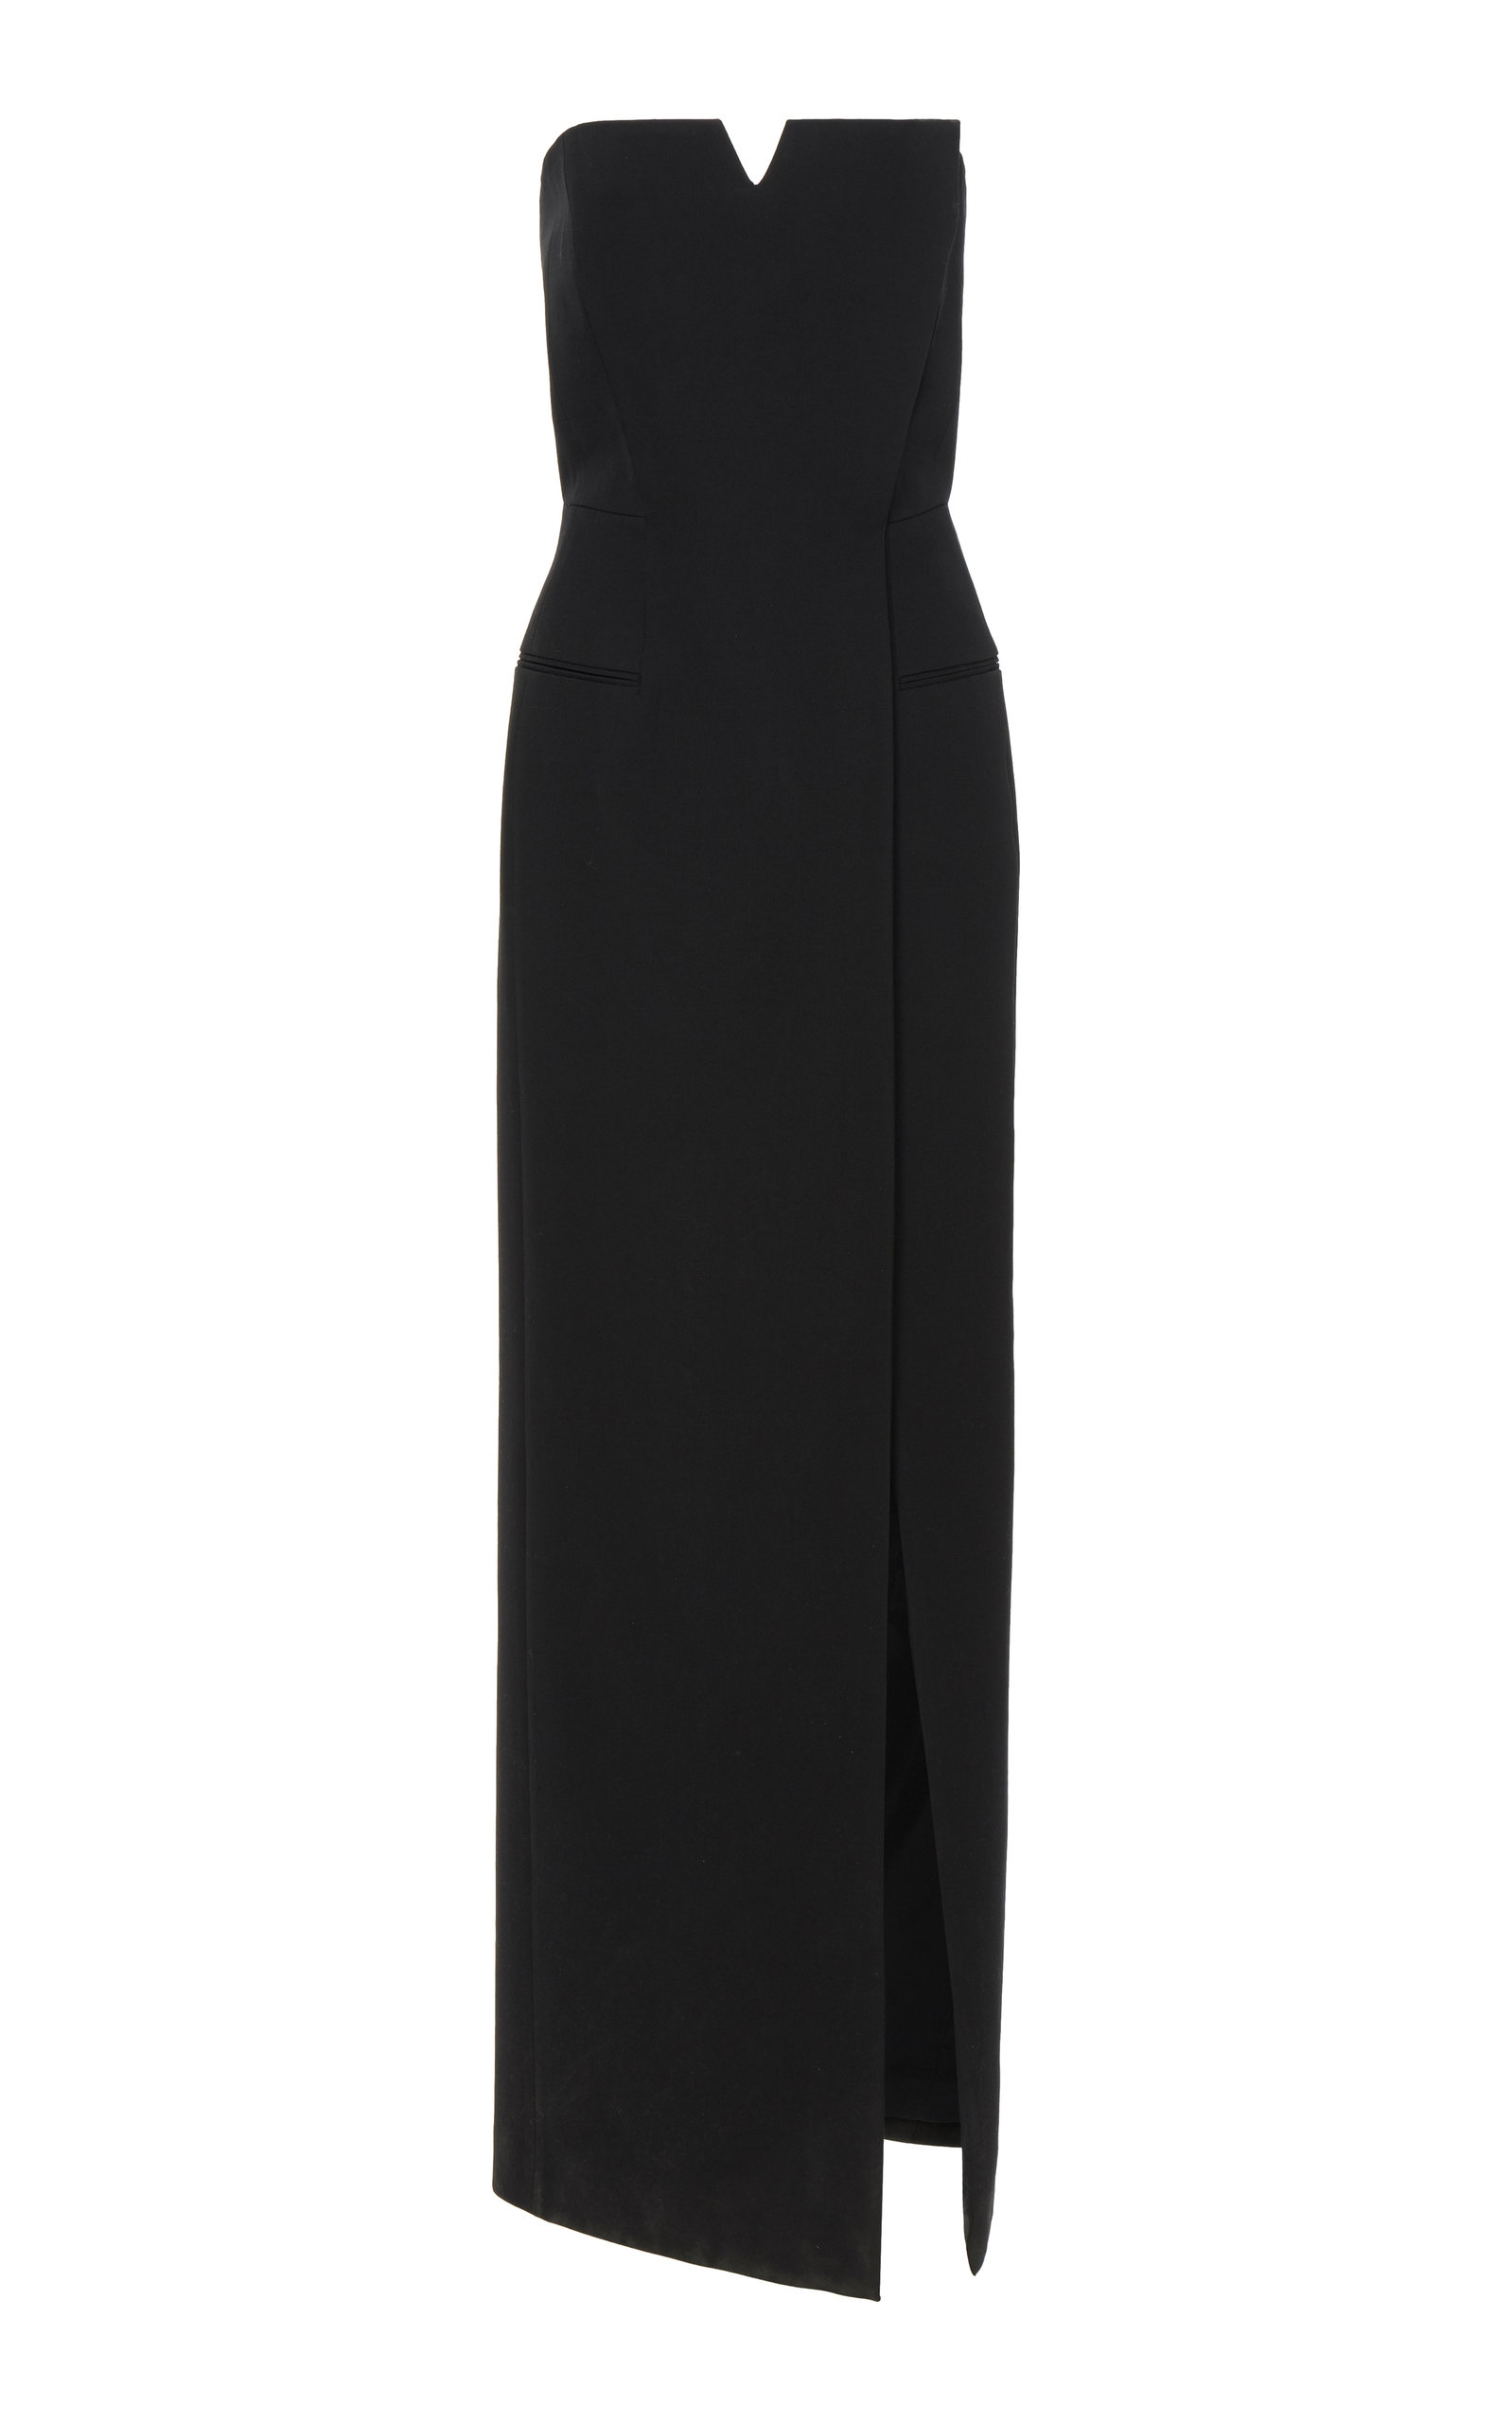 Buy Givenchy Strapless Wrap-Effect Cady Gown online, shop Givenchy at the best price